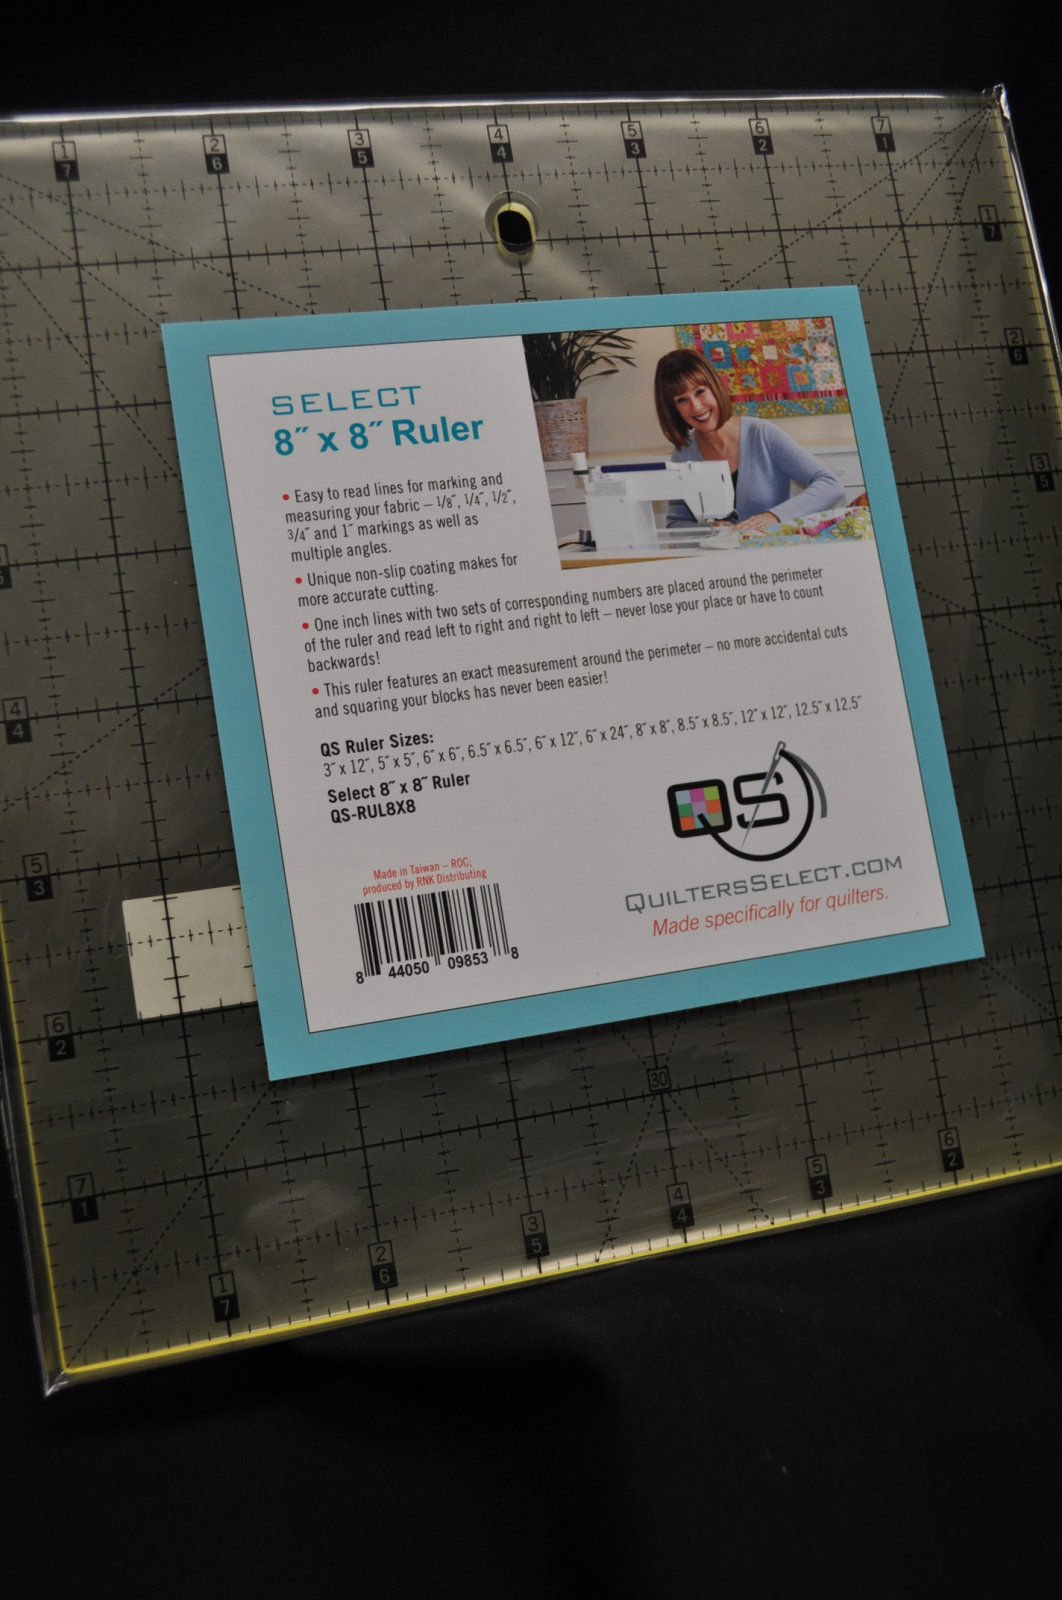 Quilters Select Quilting Ruler 8 x 8